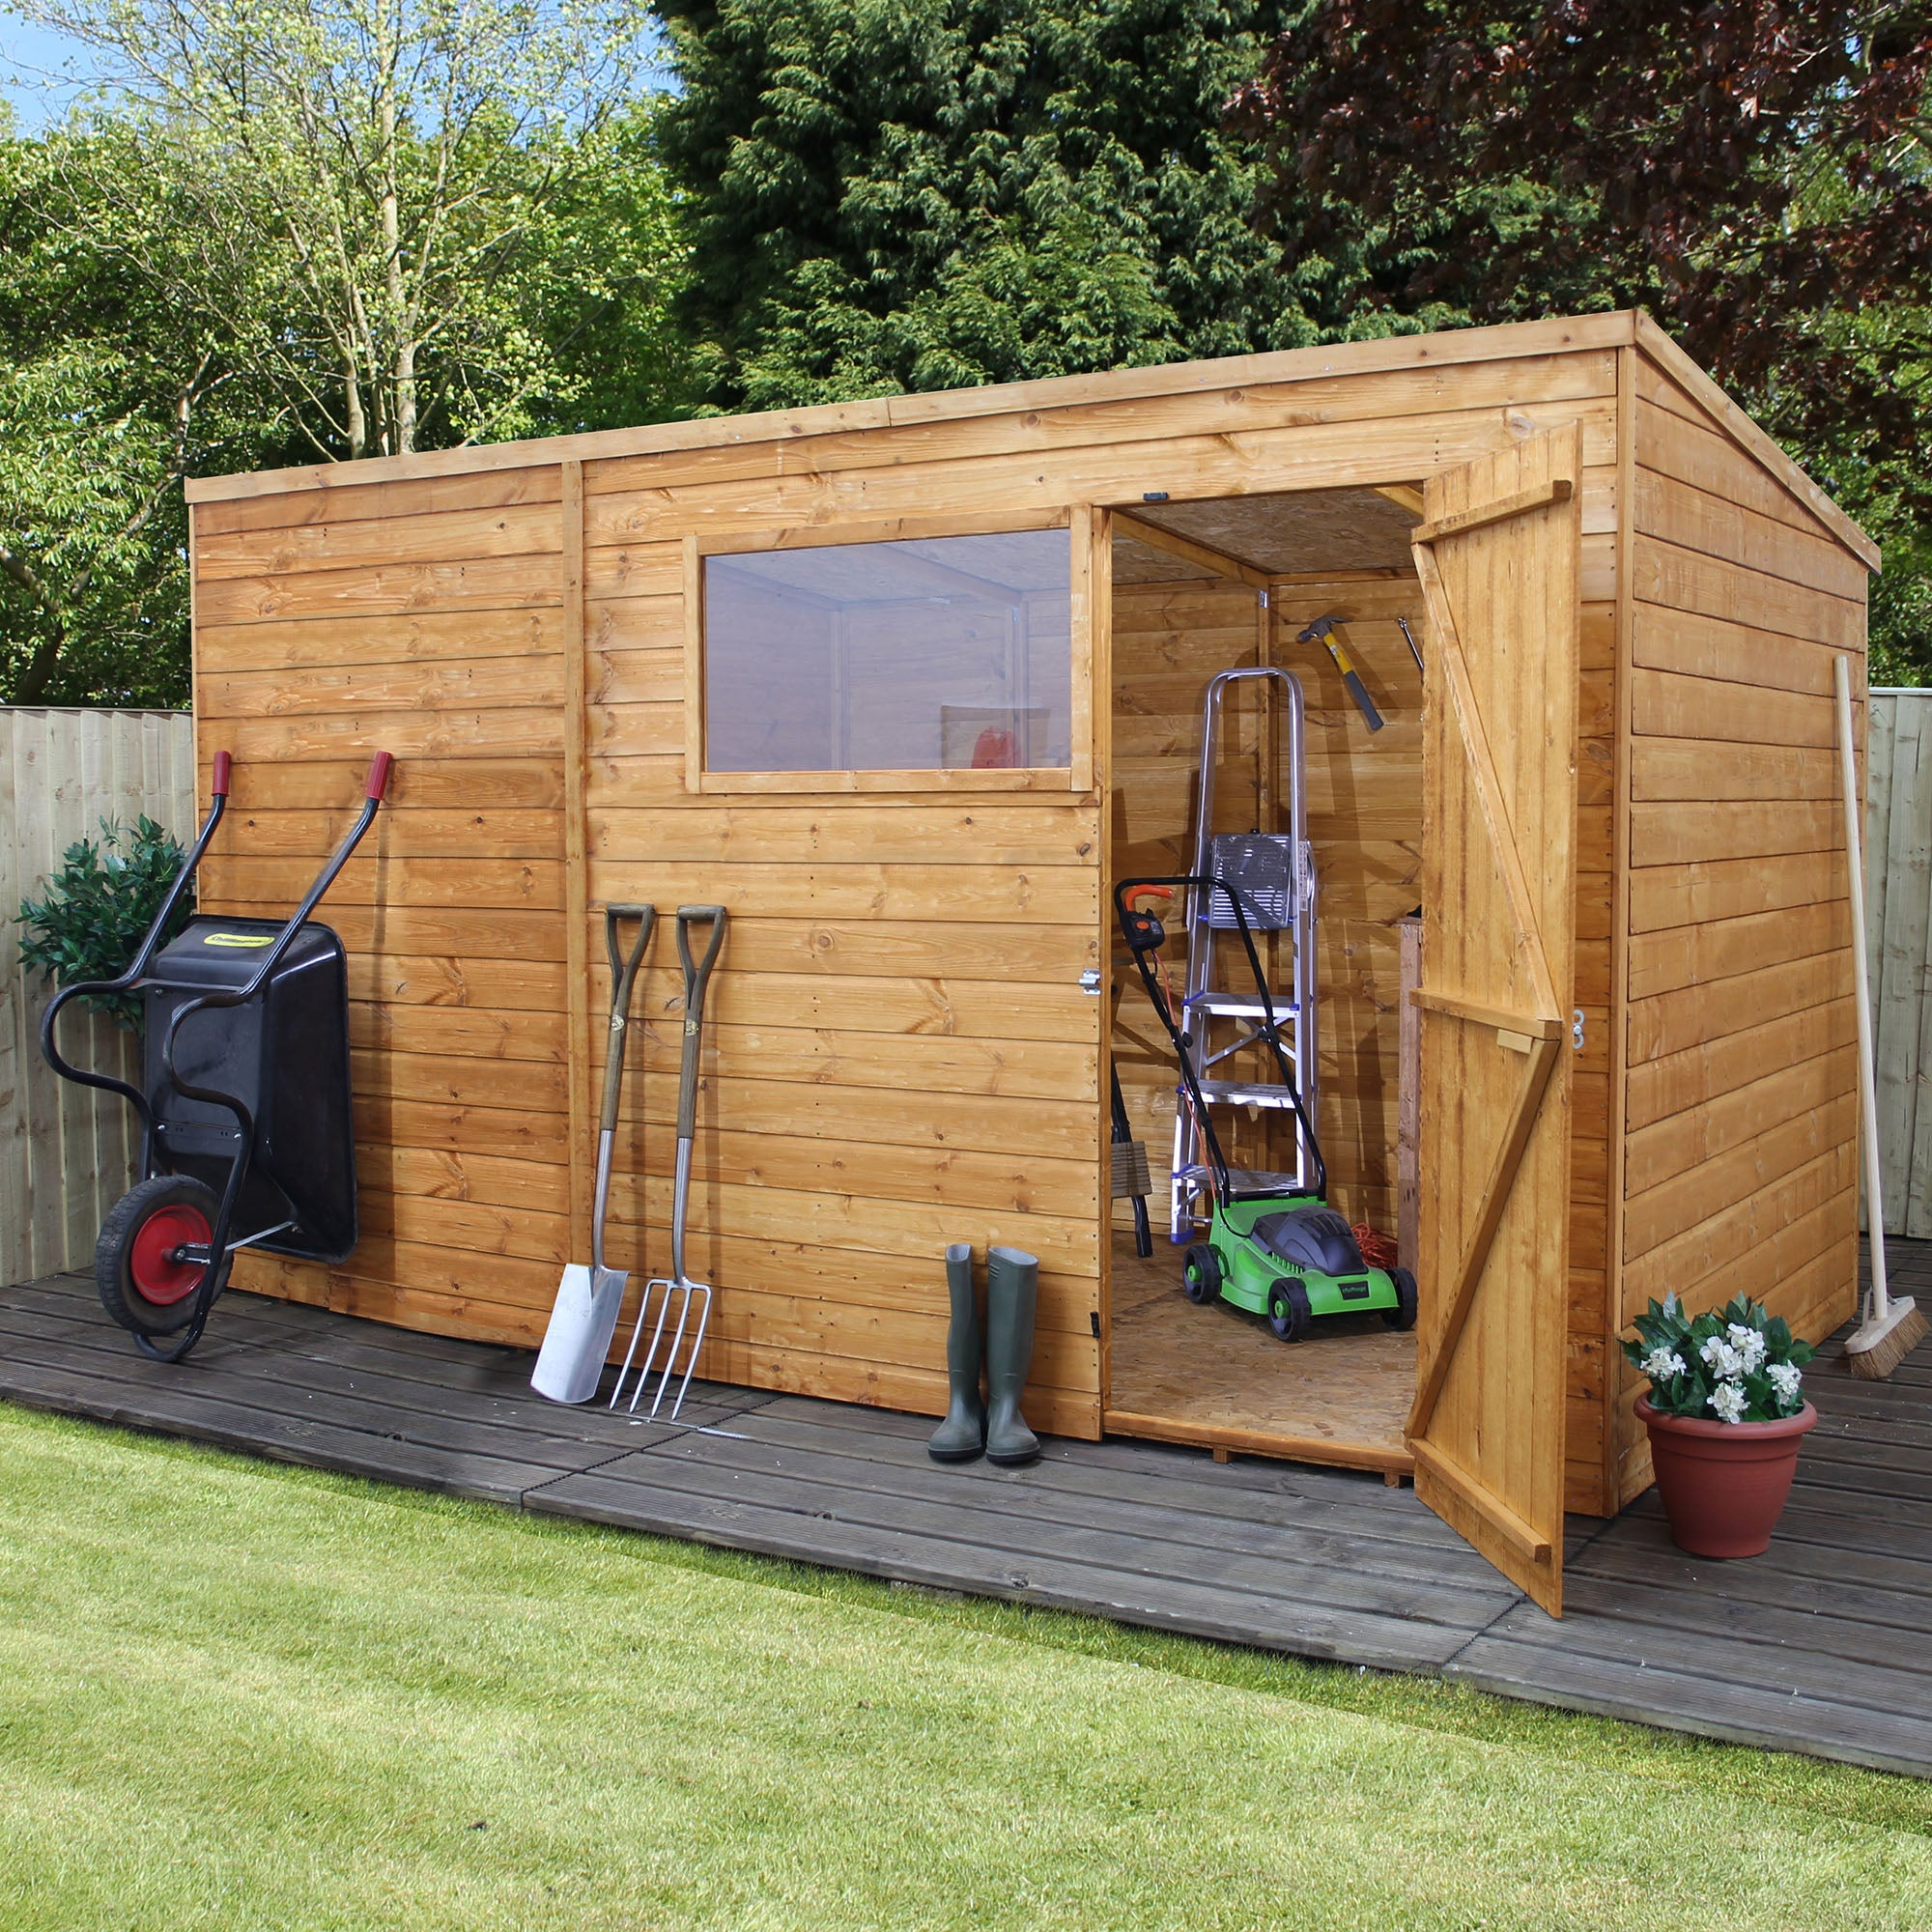 kp c weather sheds under plastic keter shed storage resin x all outdoor manor